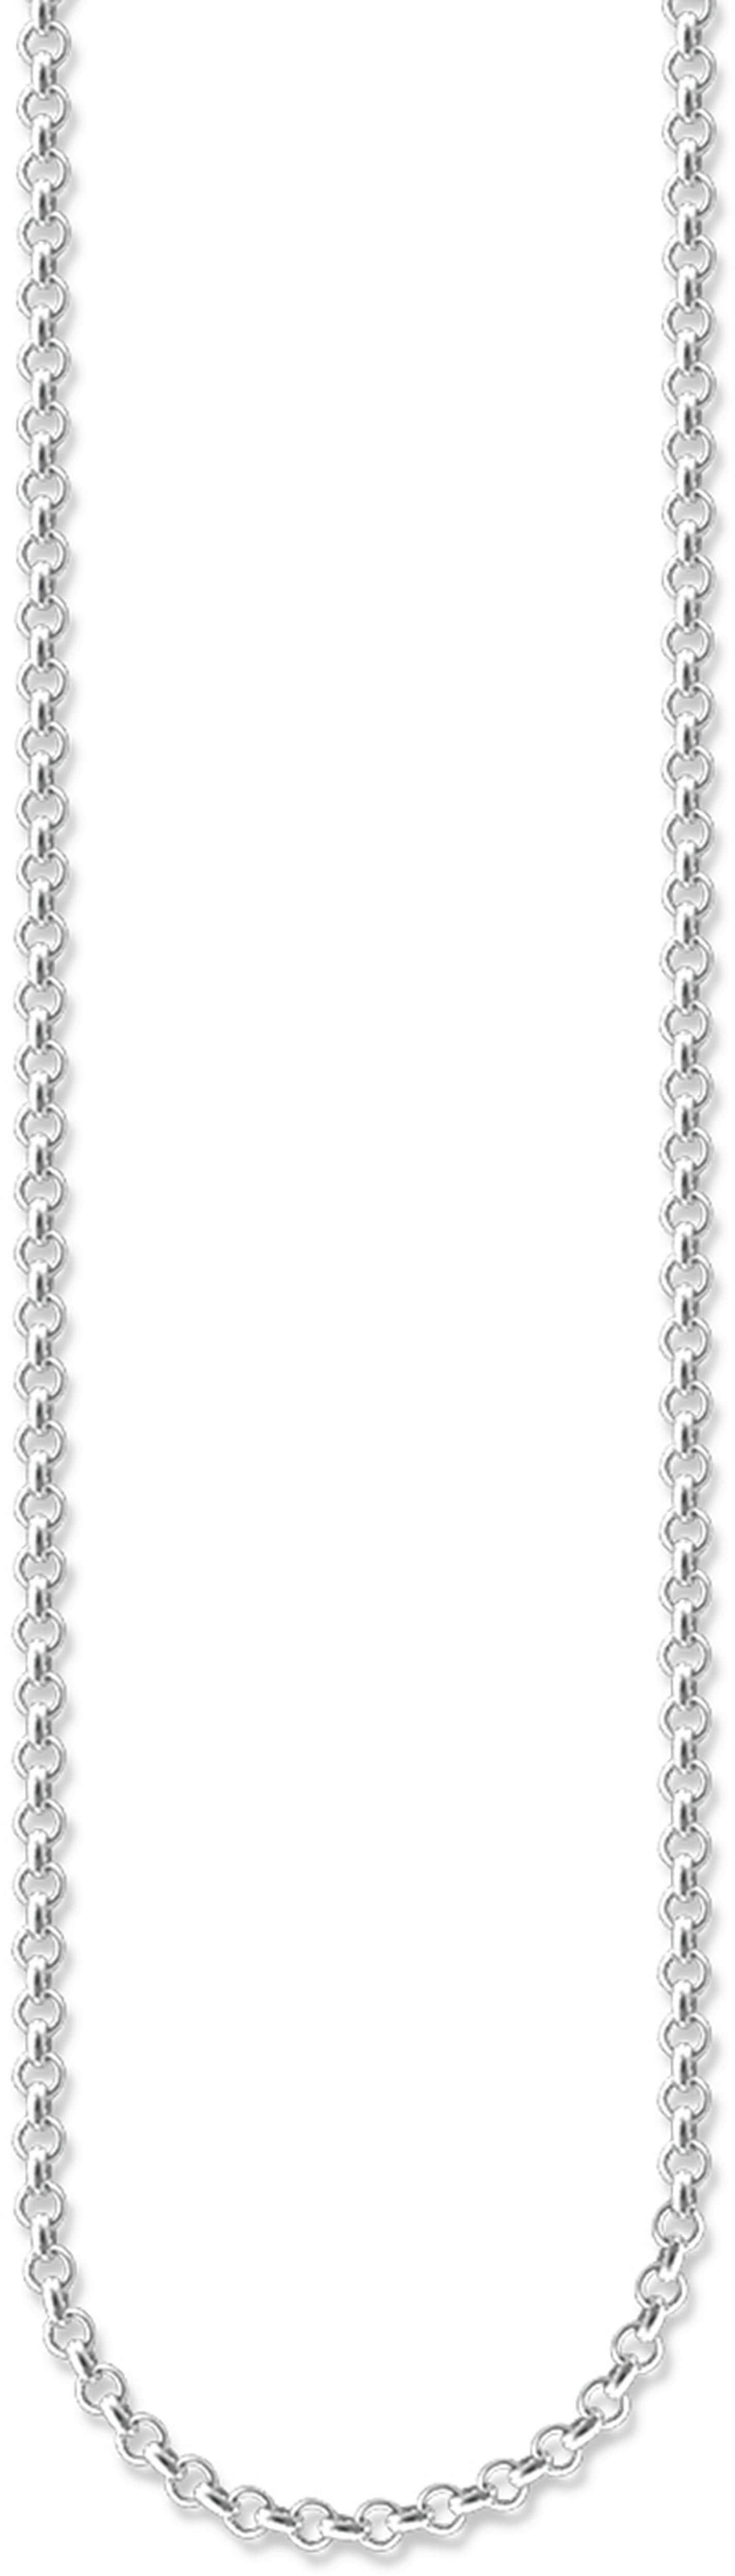 THOMAS SABO Charm-Kette Charm Club Carrier X0001-001-12-L42v S M L | Schmuck > Charms | Thomas Sabo